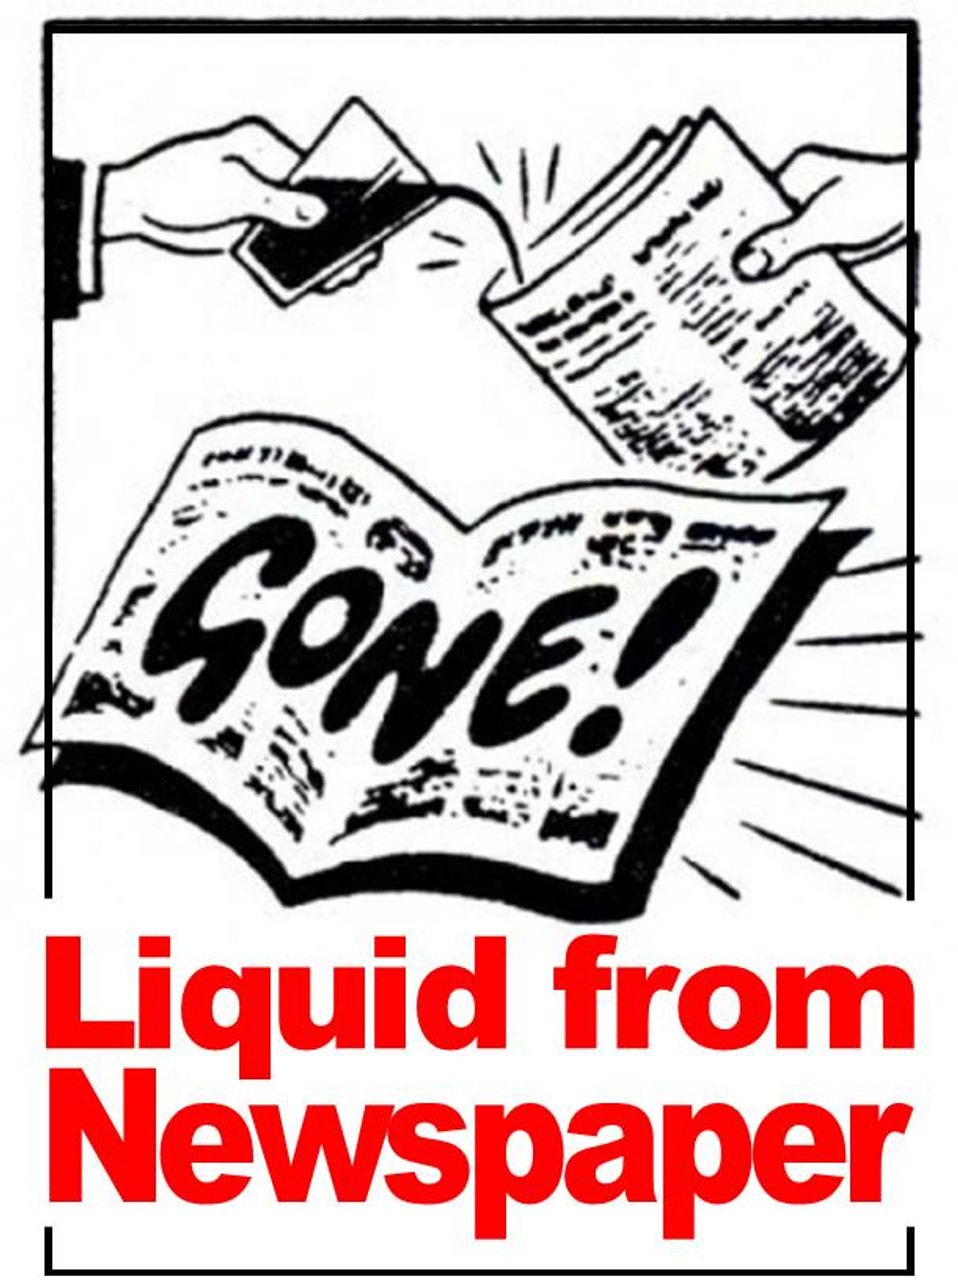 Liquid from Newspaper Magic trick